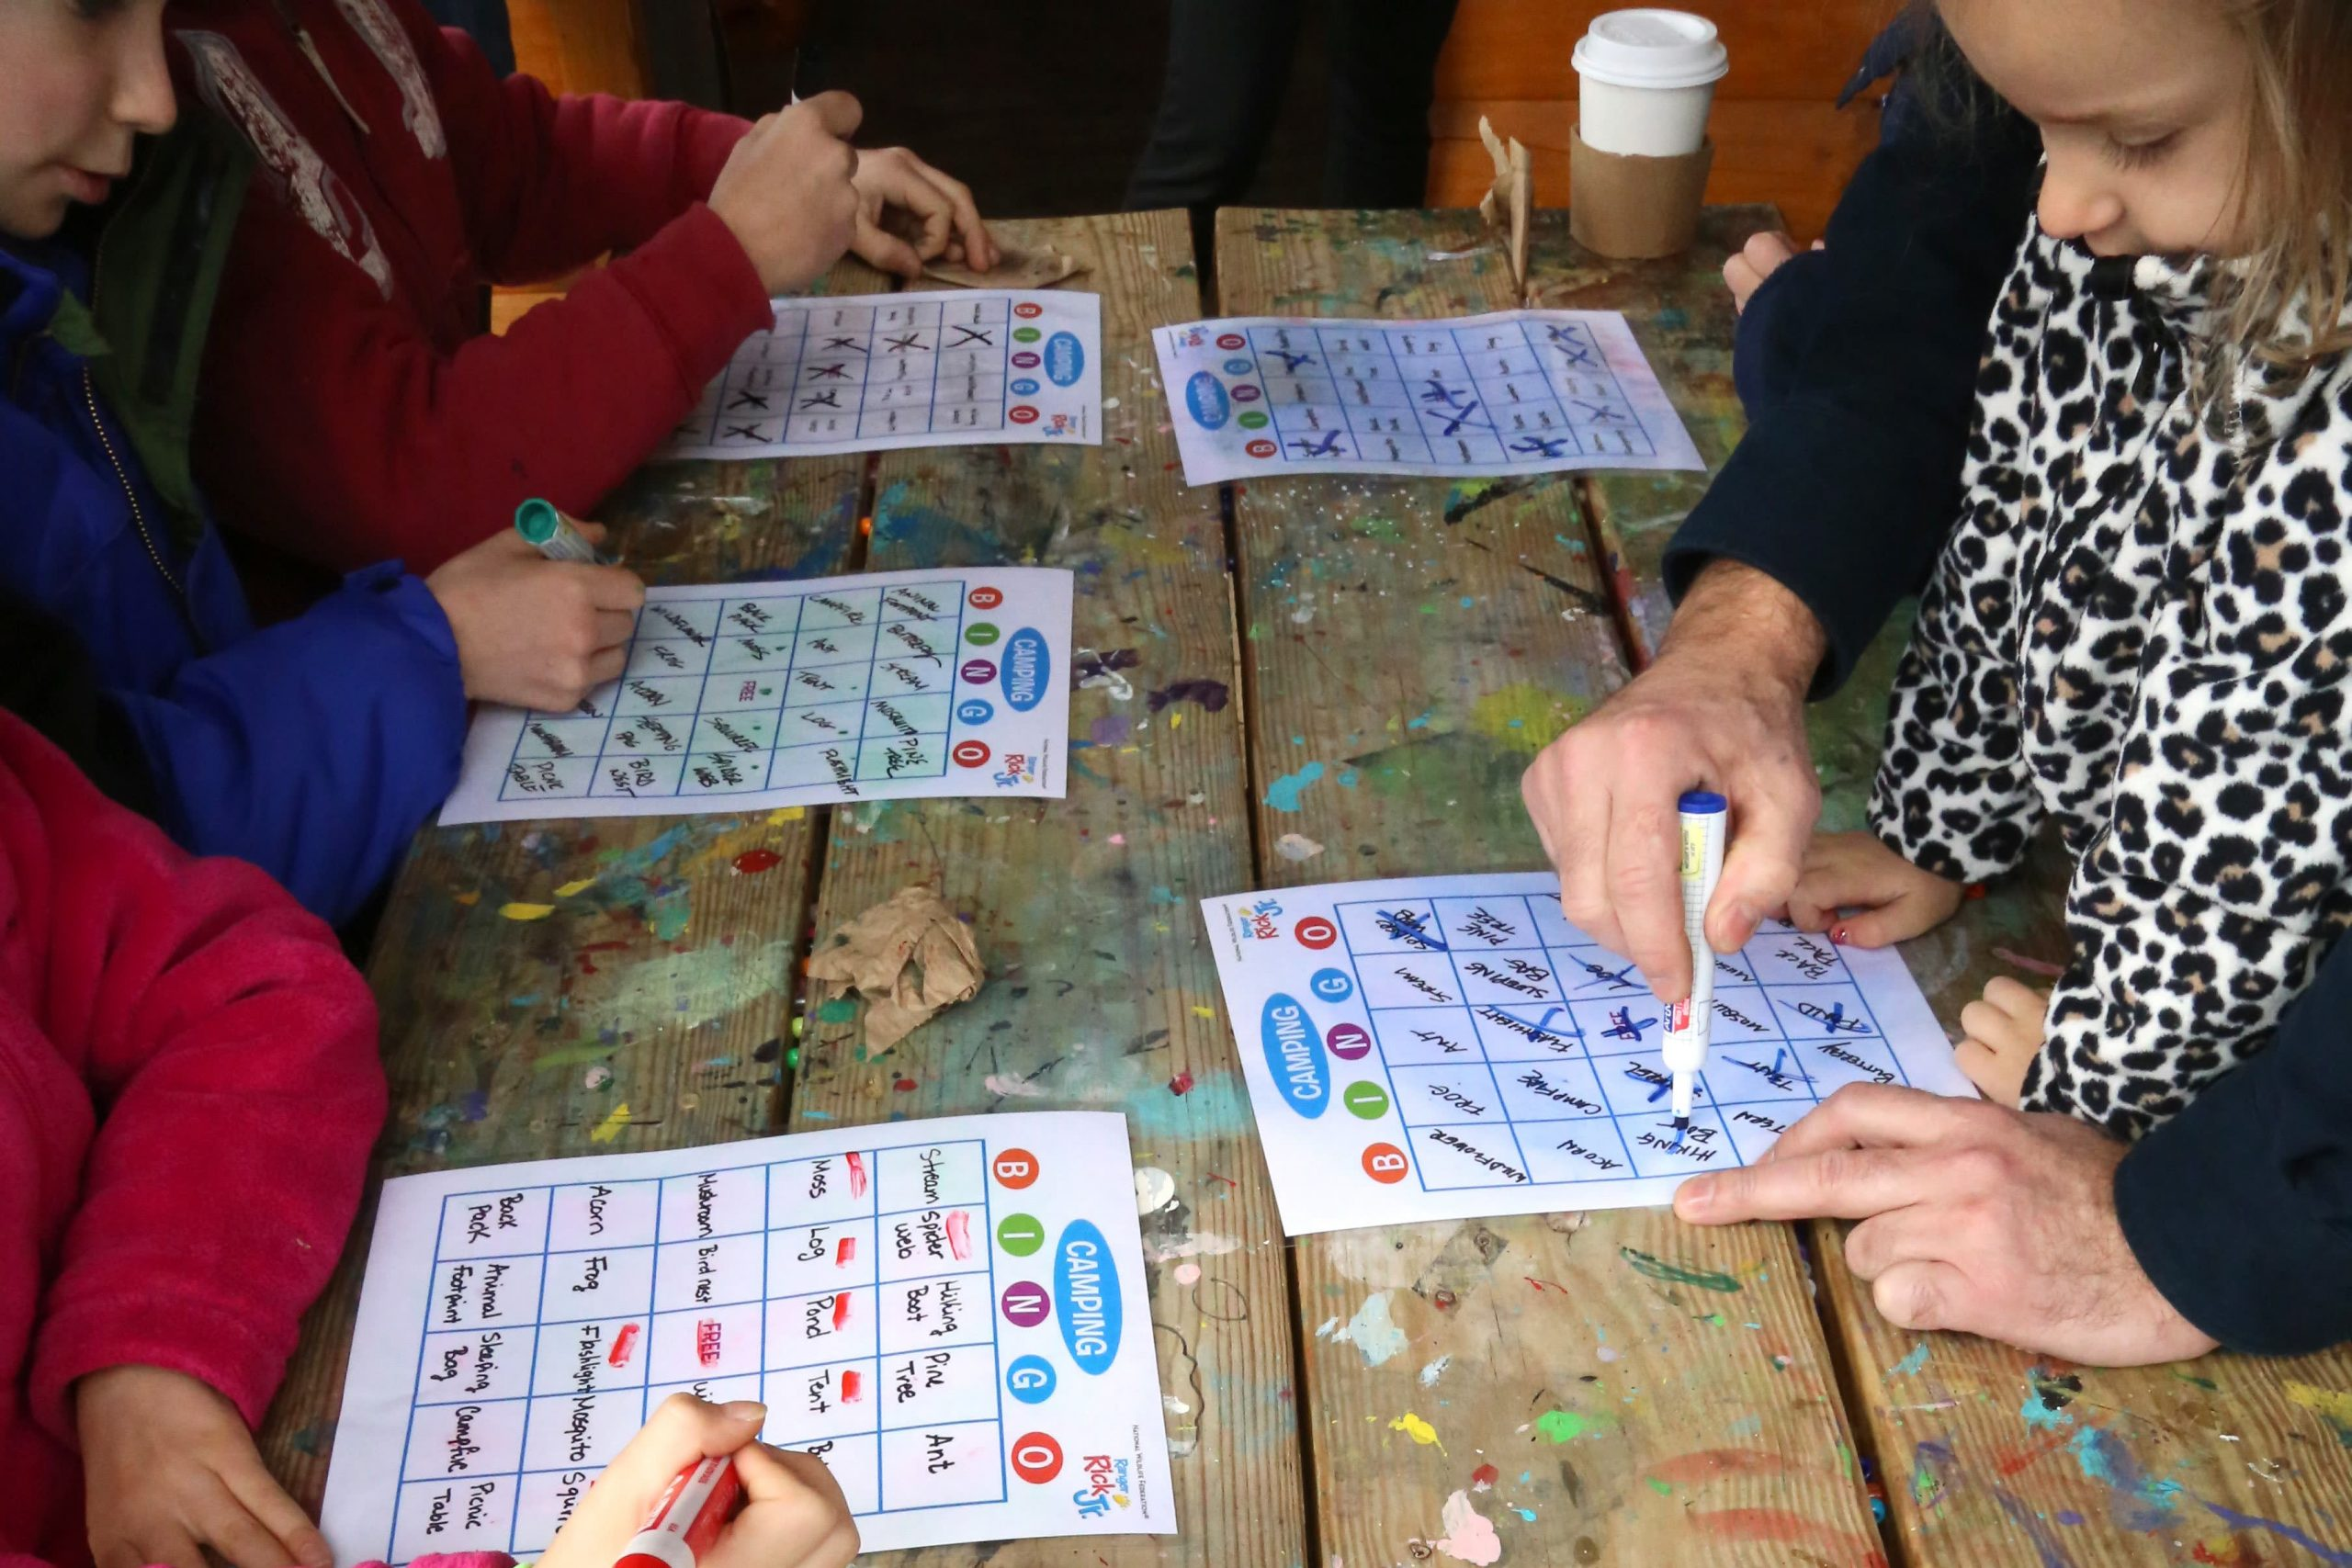 kids writing on bingo cards at picnic table